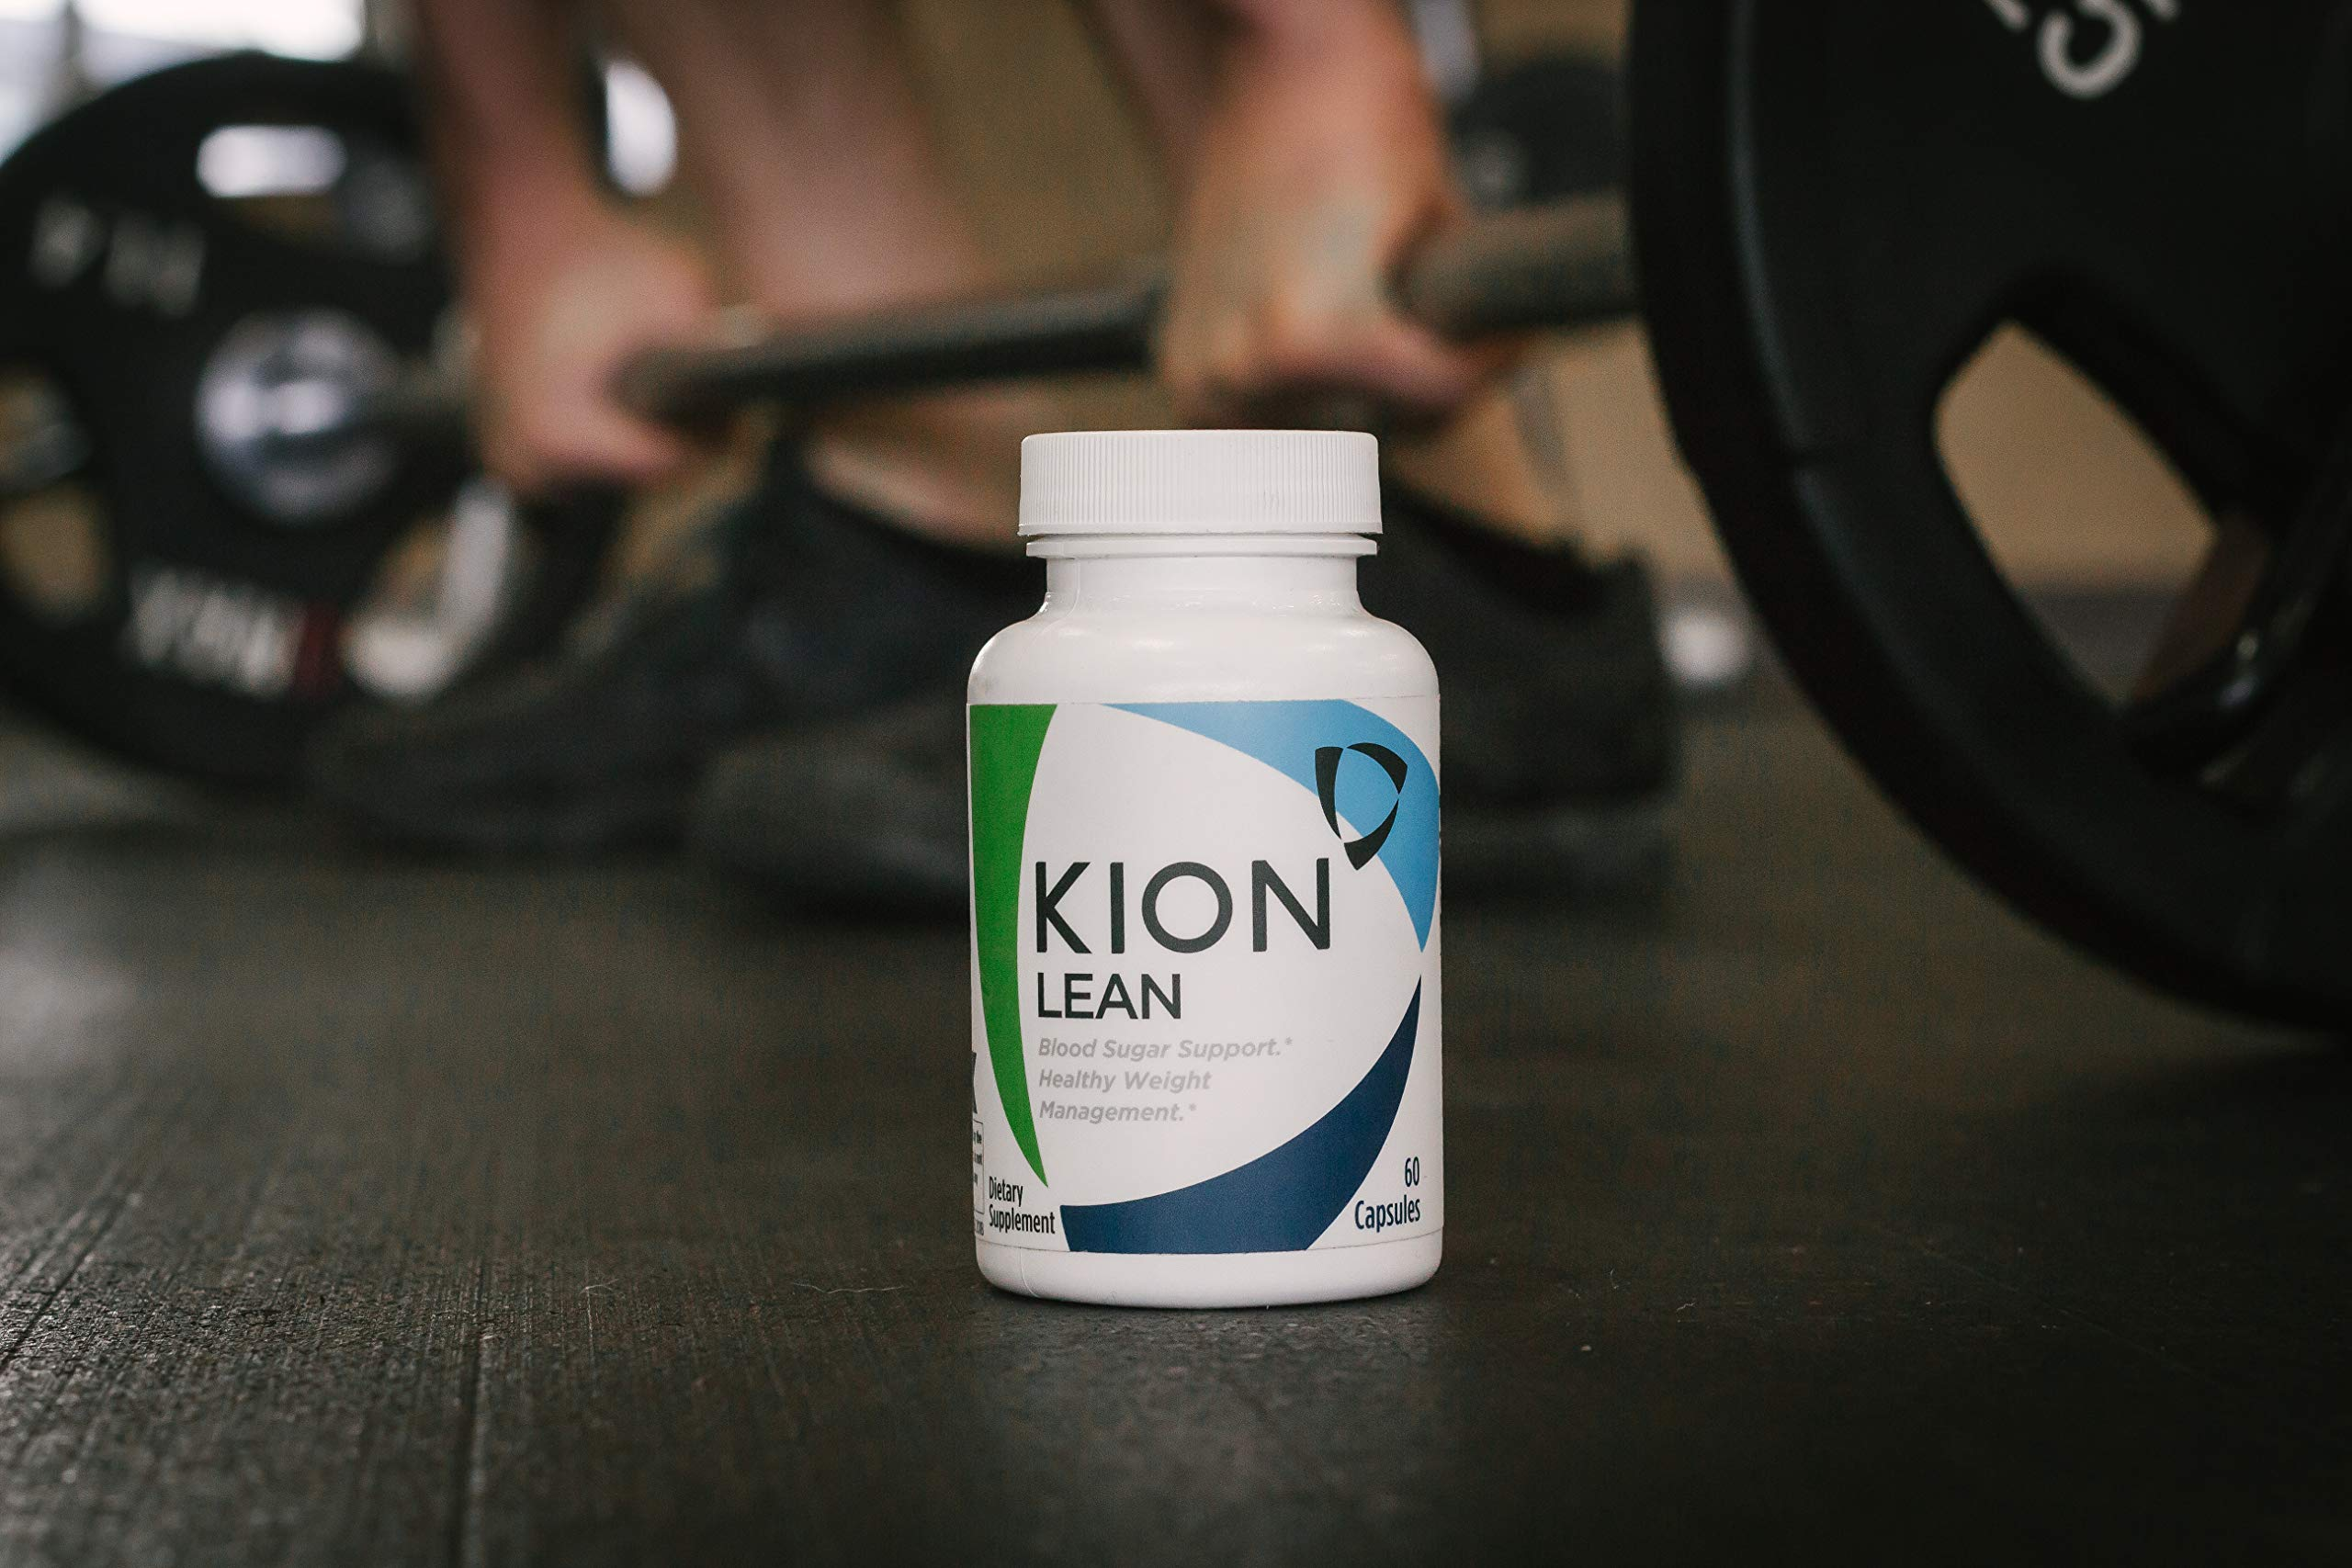 Kion Lean | Supports Weight Management, Liver Health, Blood Sugar Regulation, Healthy Body Fat Levels, and Longevity | Contains Bitter Melon (Glycostat) and Rock Lotus (Kingsun) | 30 Servings by Kion (Image #8)